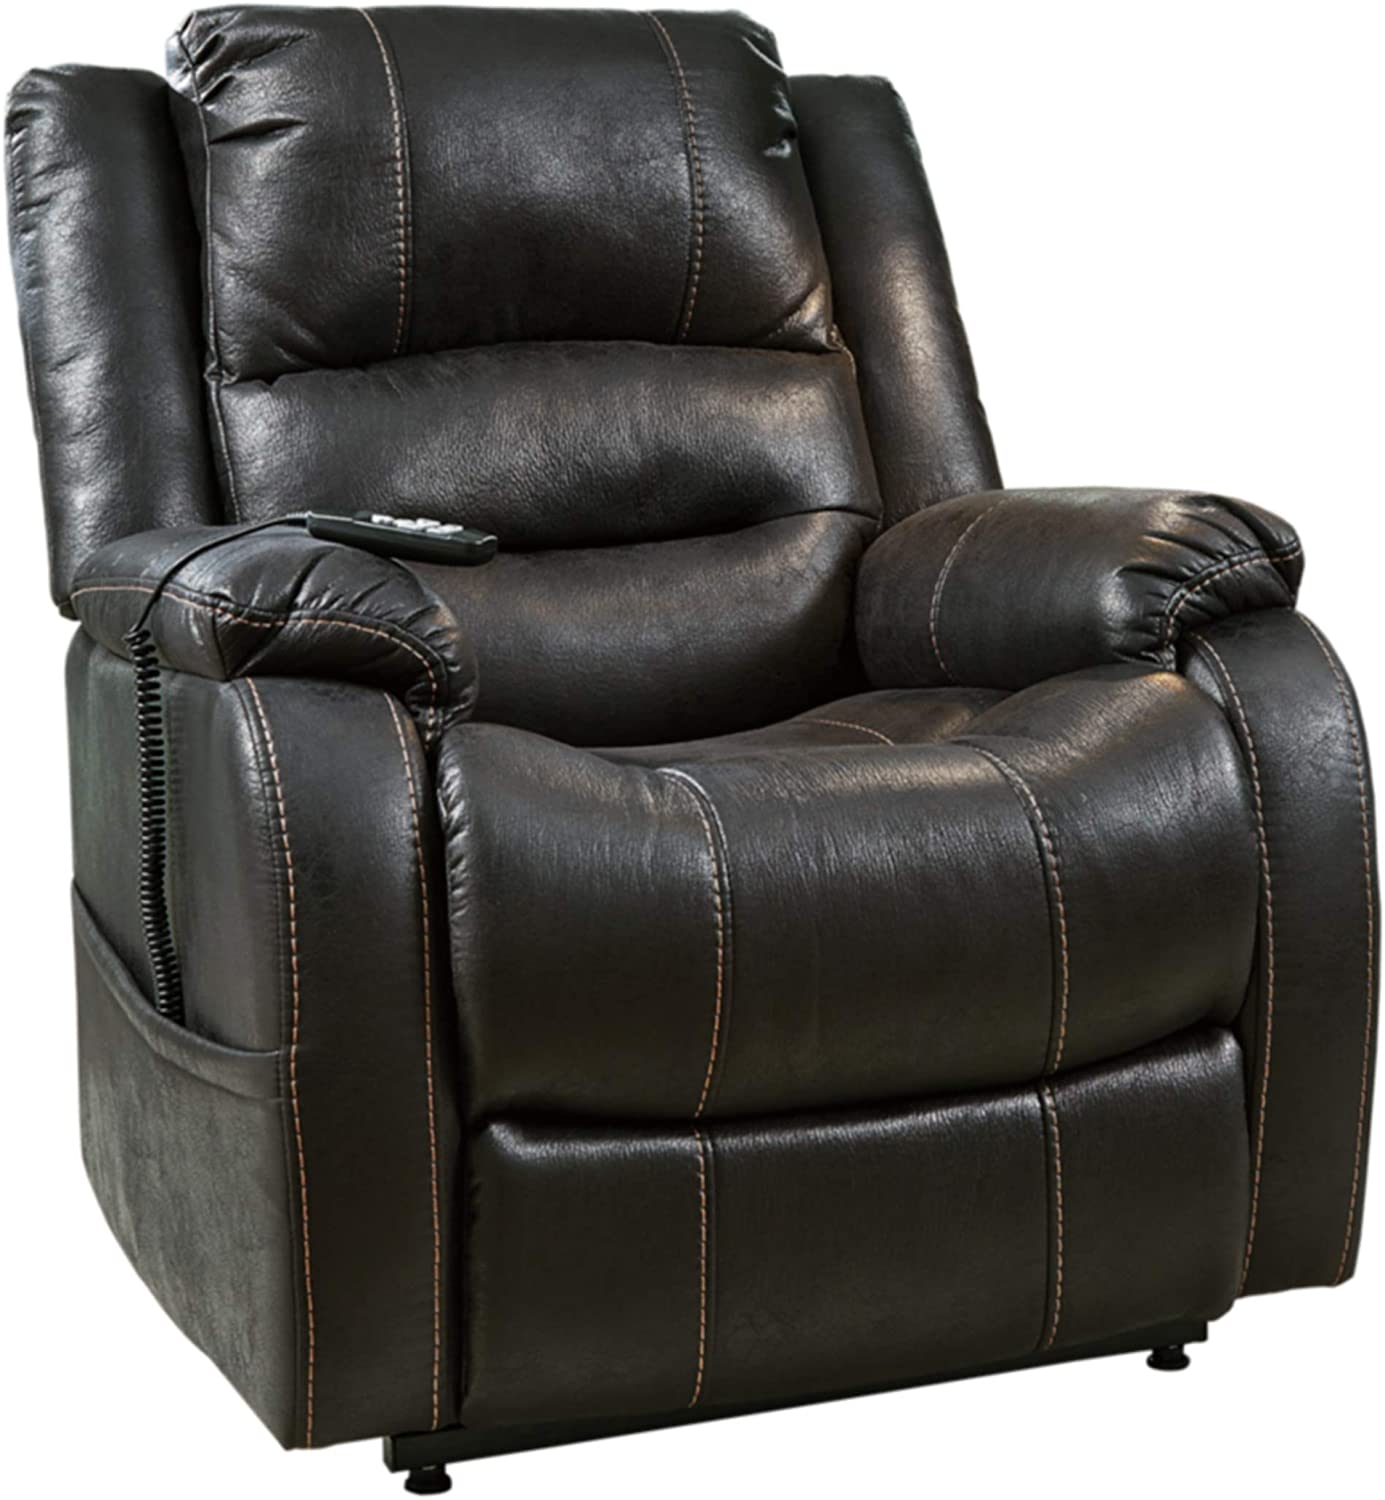 Amazon Com Signature Design By Ashley Yandel Upholstered Power Lift Recliner For Elderly Black Furniture Decor